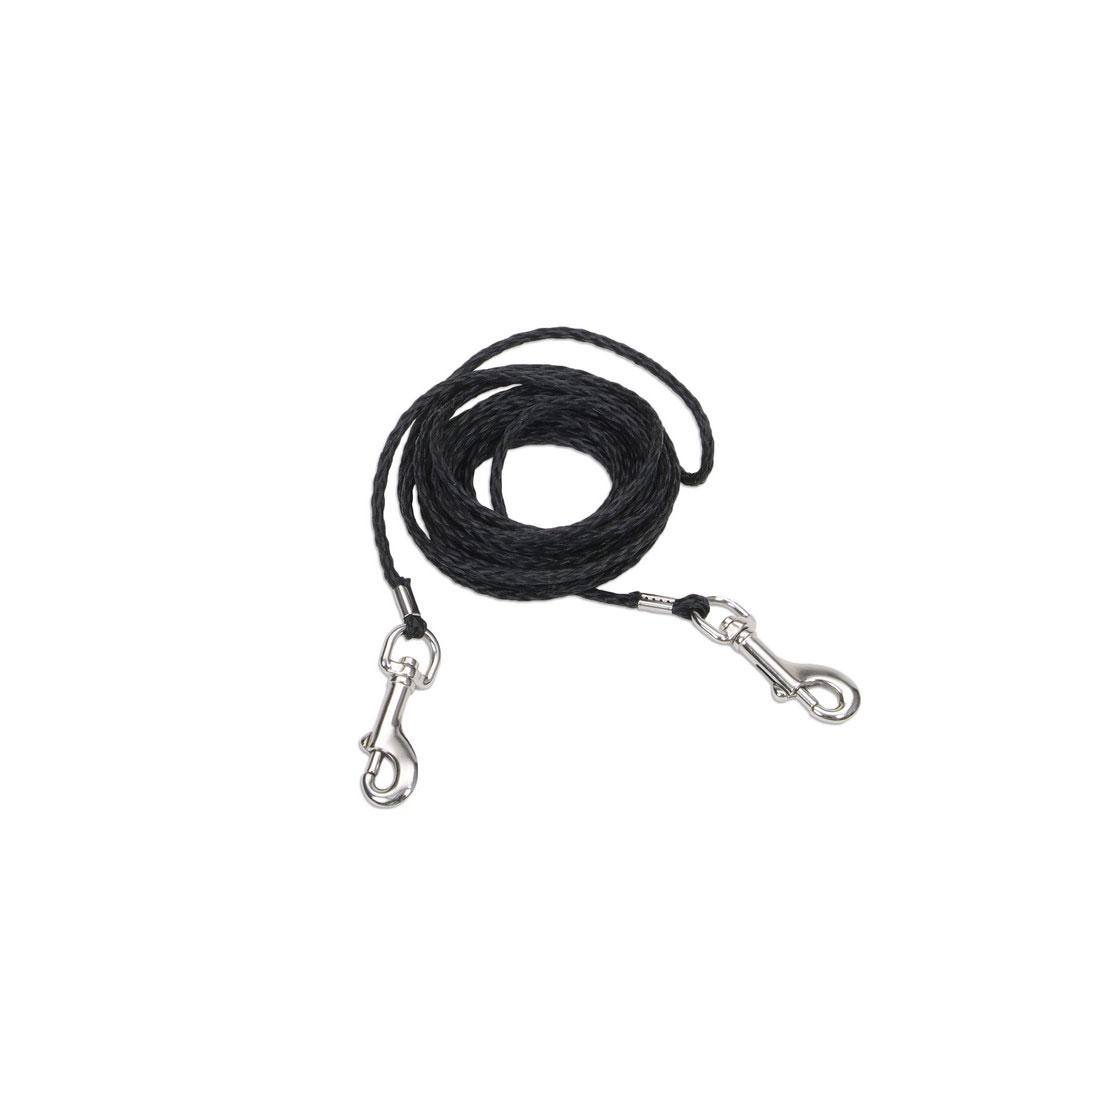 Coastal Poly Cat Tie Out, Black, 1/8-in x 15-ft